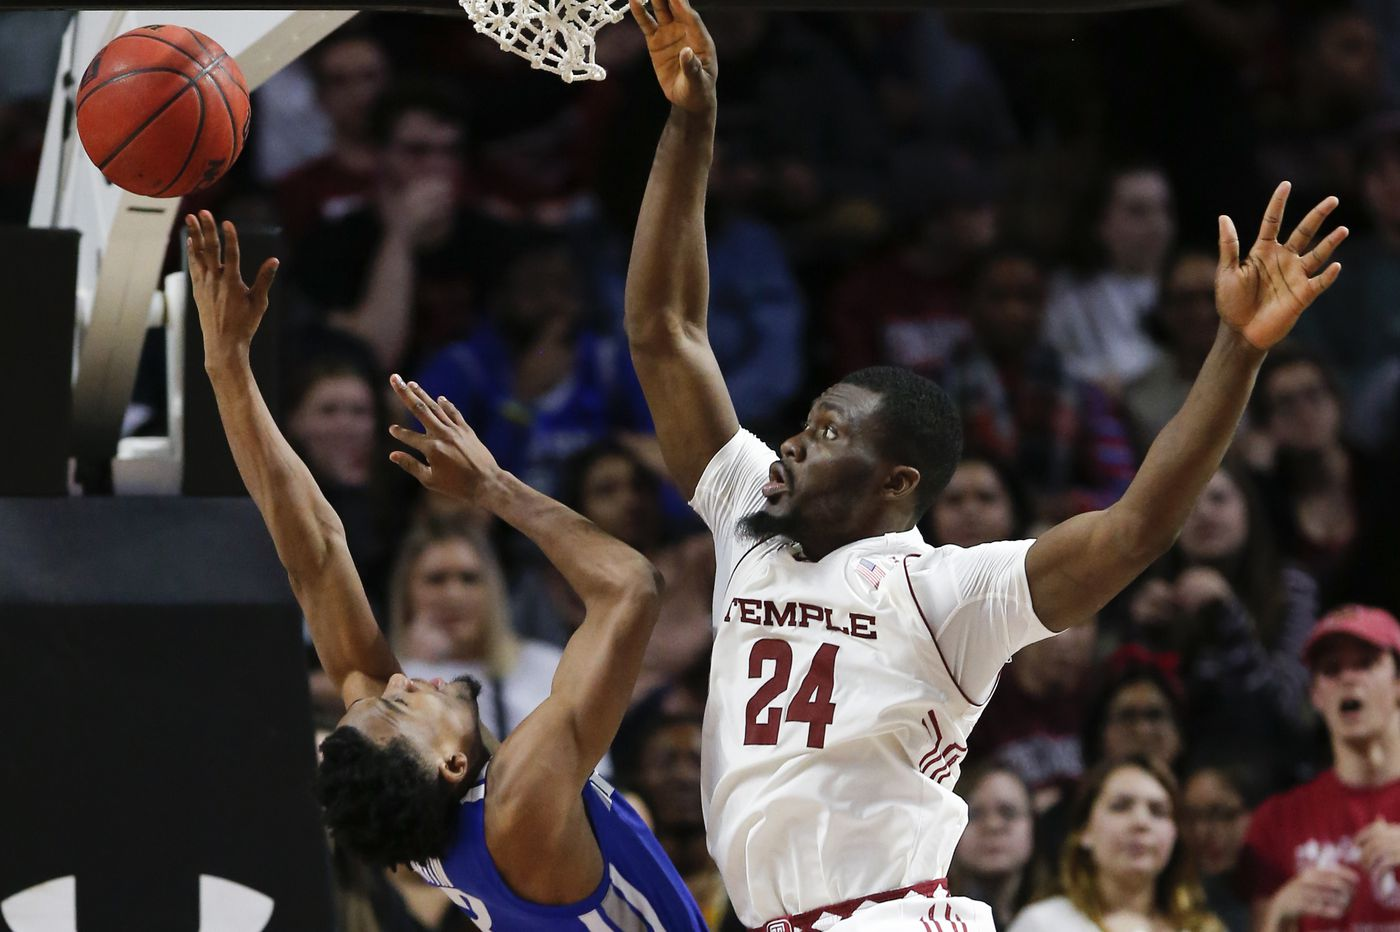 Looking at the AAC basketball tournament through the lens of Temple